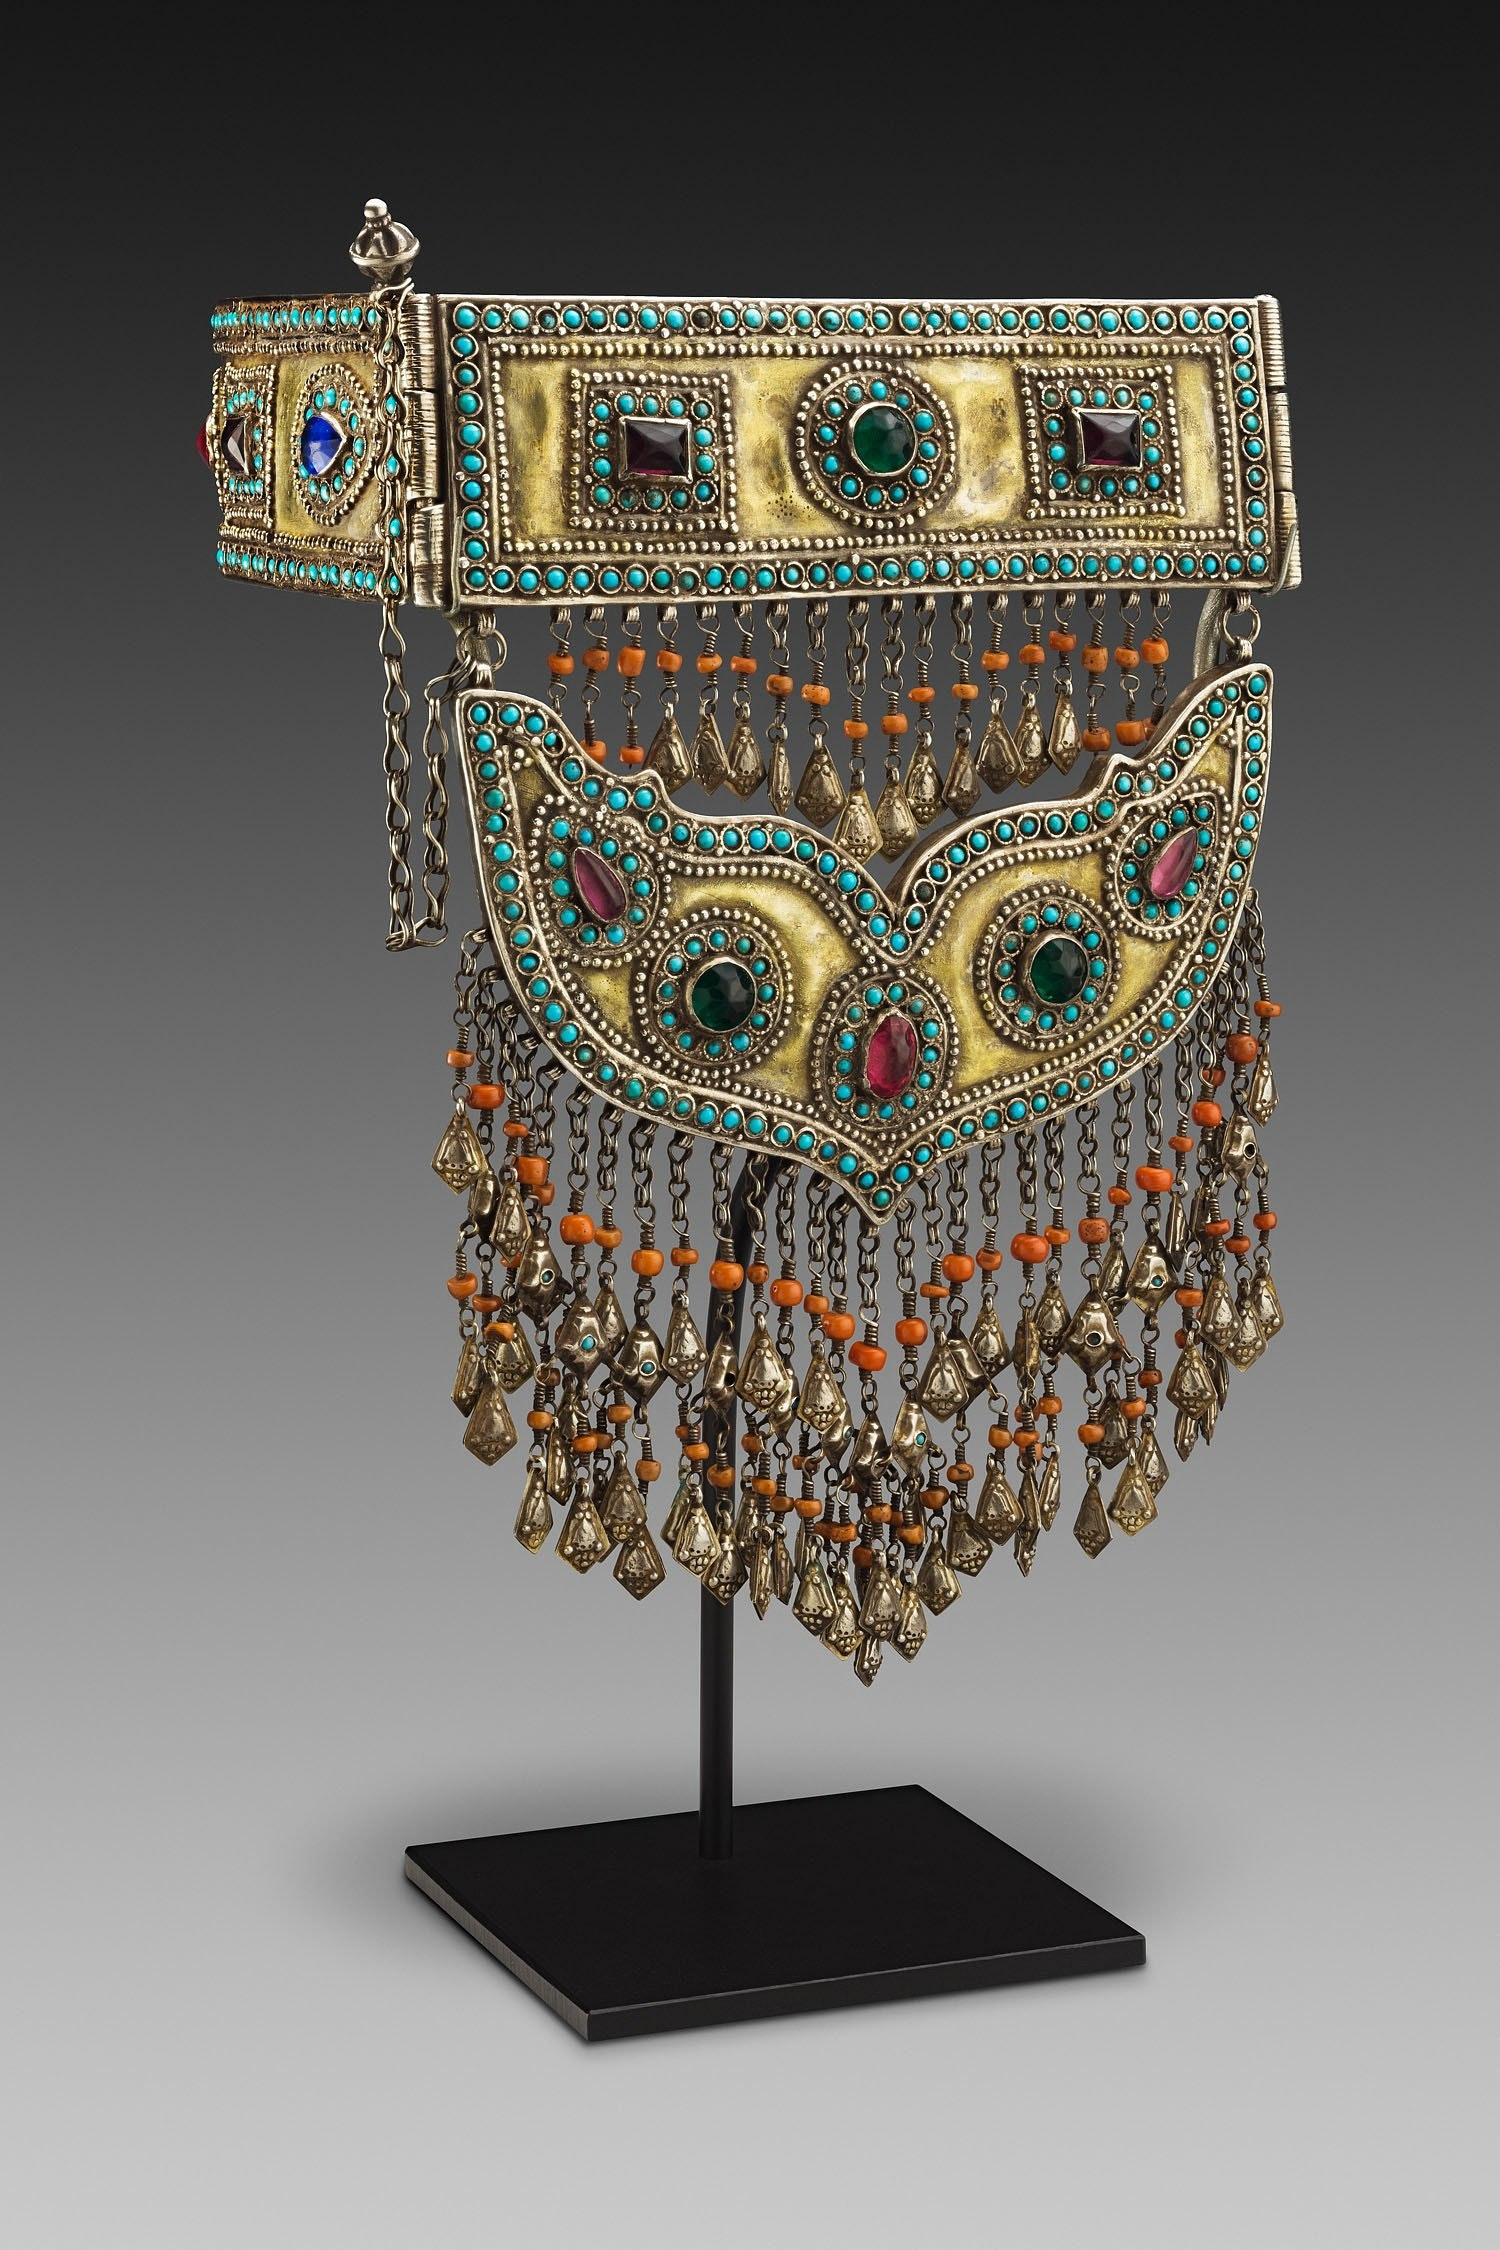 An ornate and colorful neckband with a bird pendant.